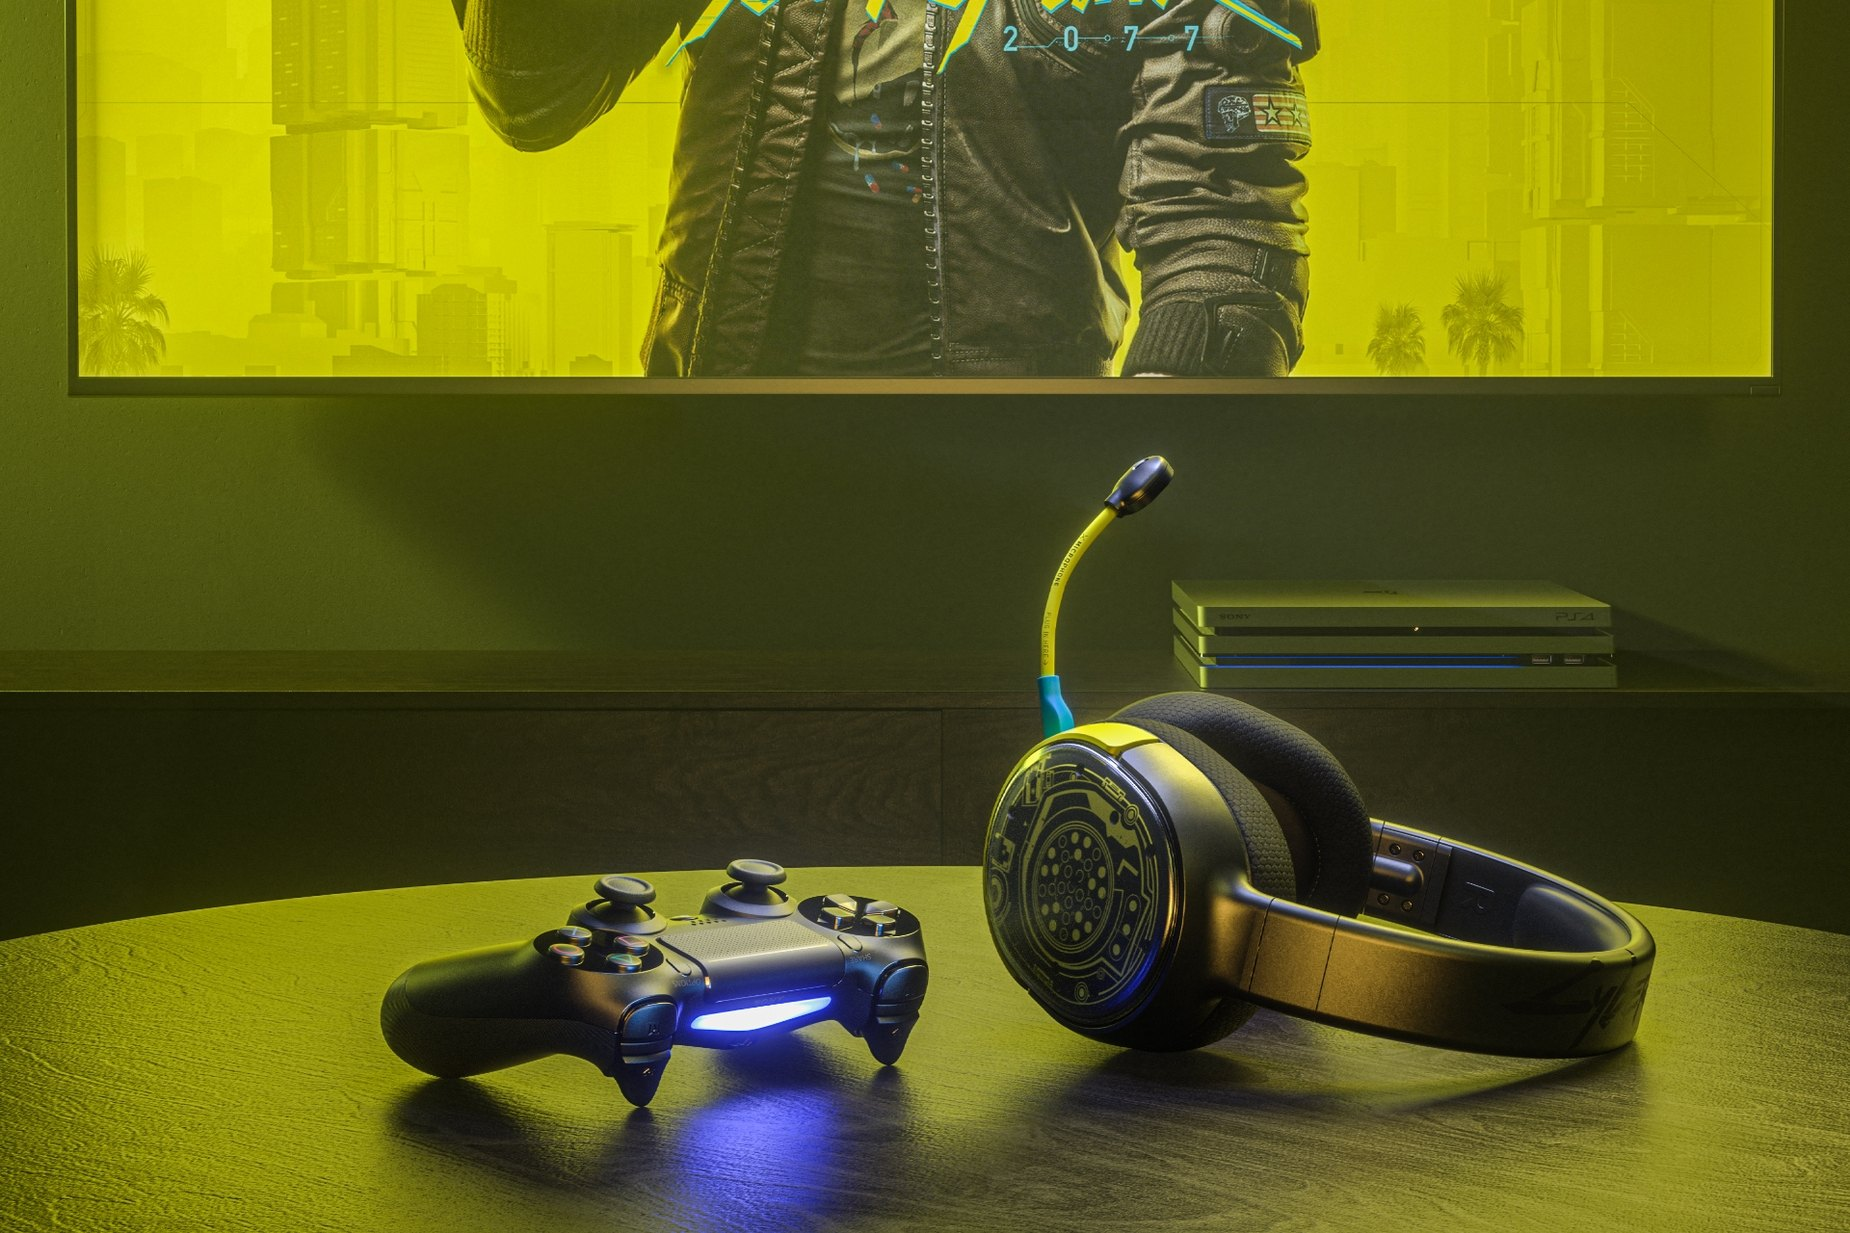 Arctis 1 Wireless Cyberpunk Edition gaming headset on table with a Playstation controller and a PS4 in the background